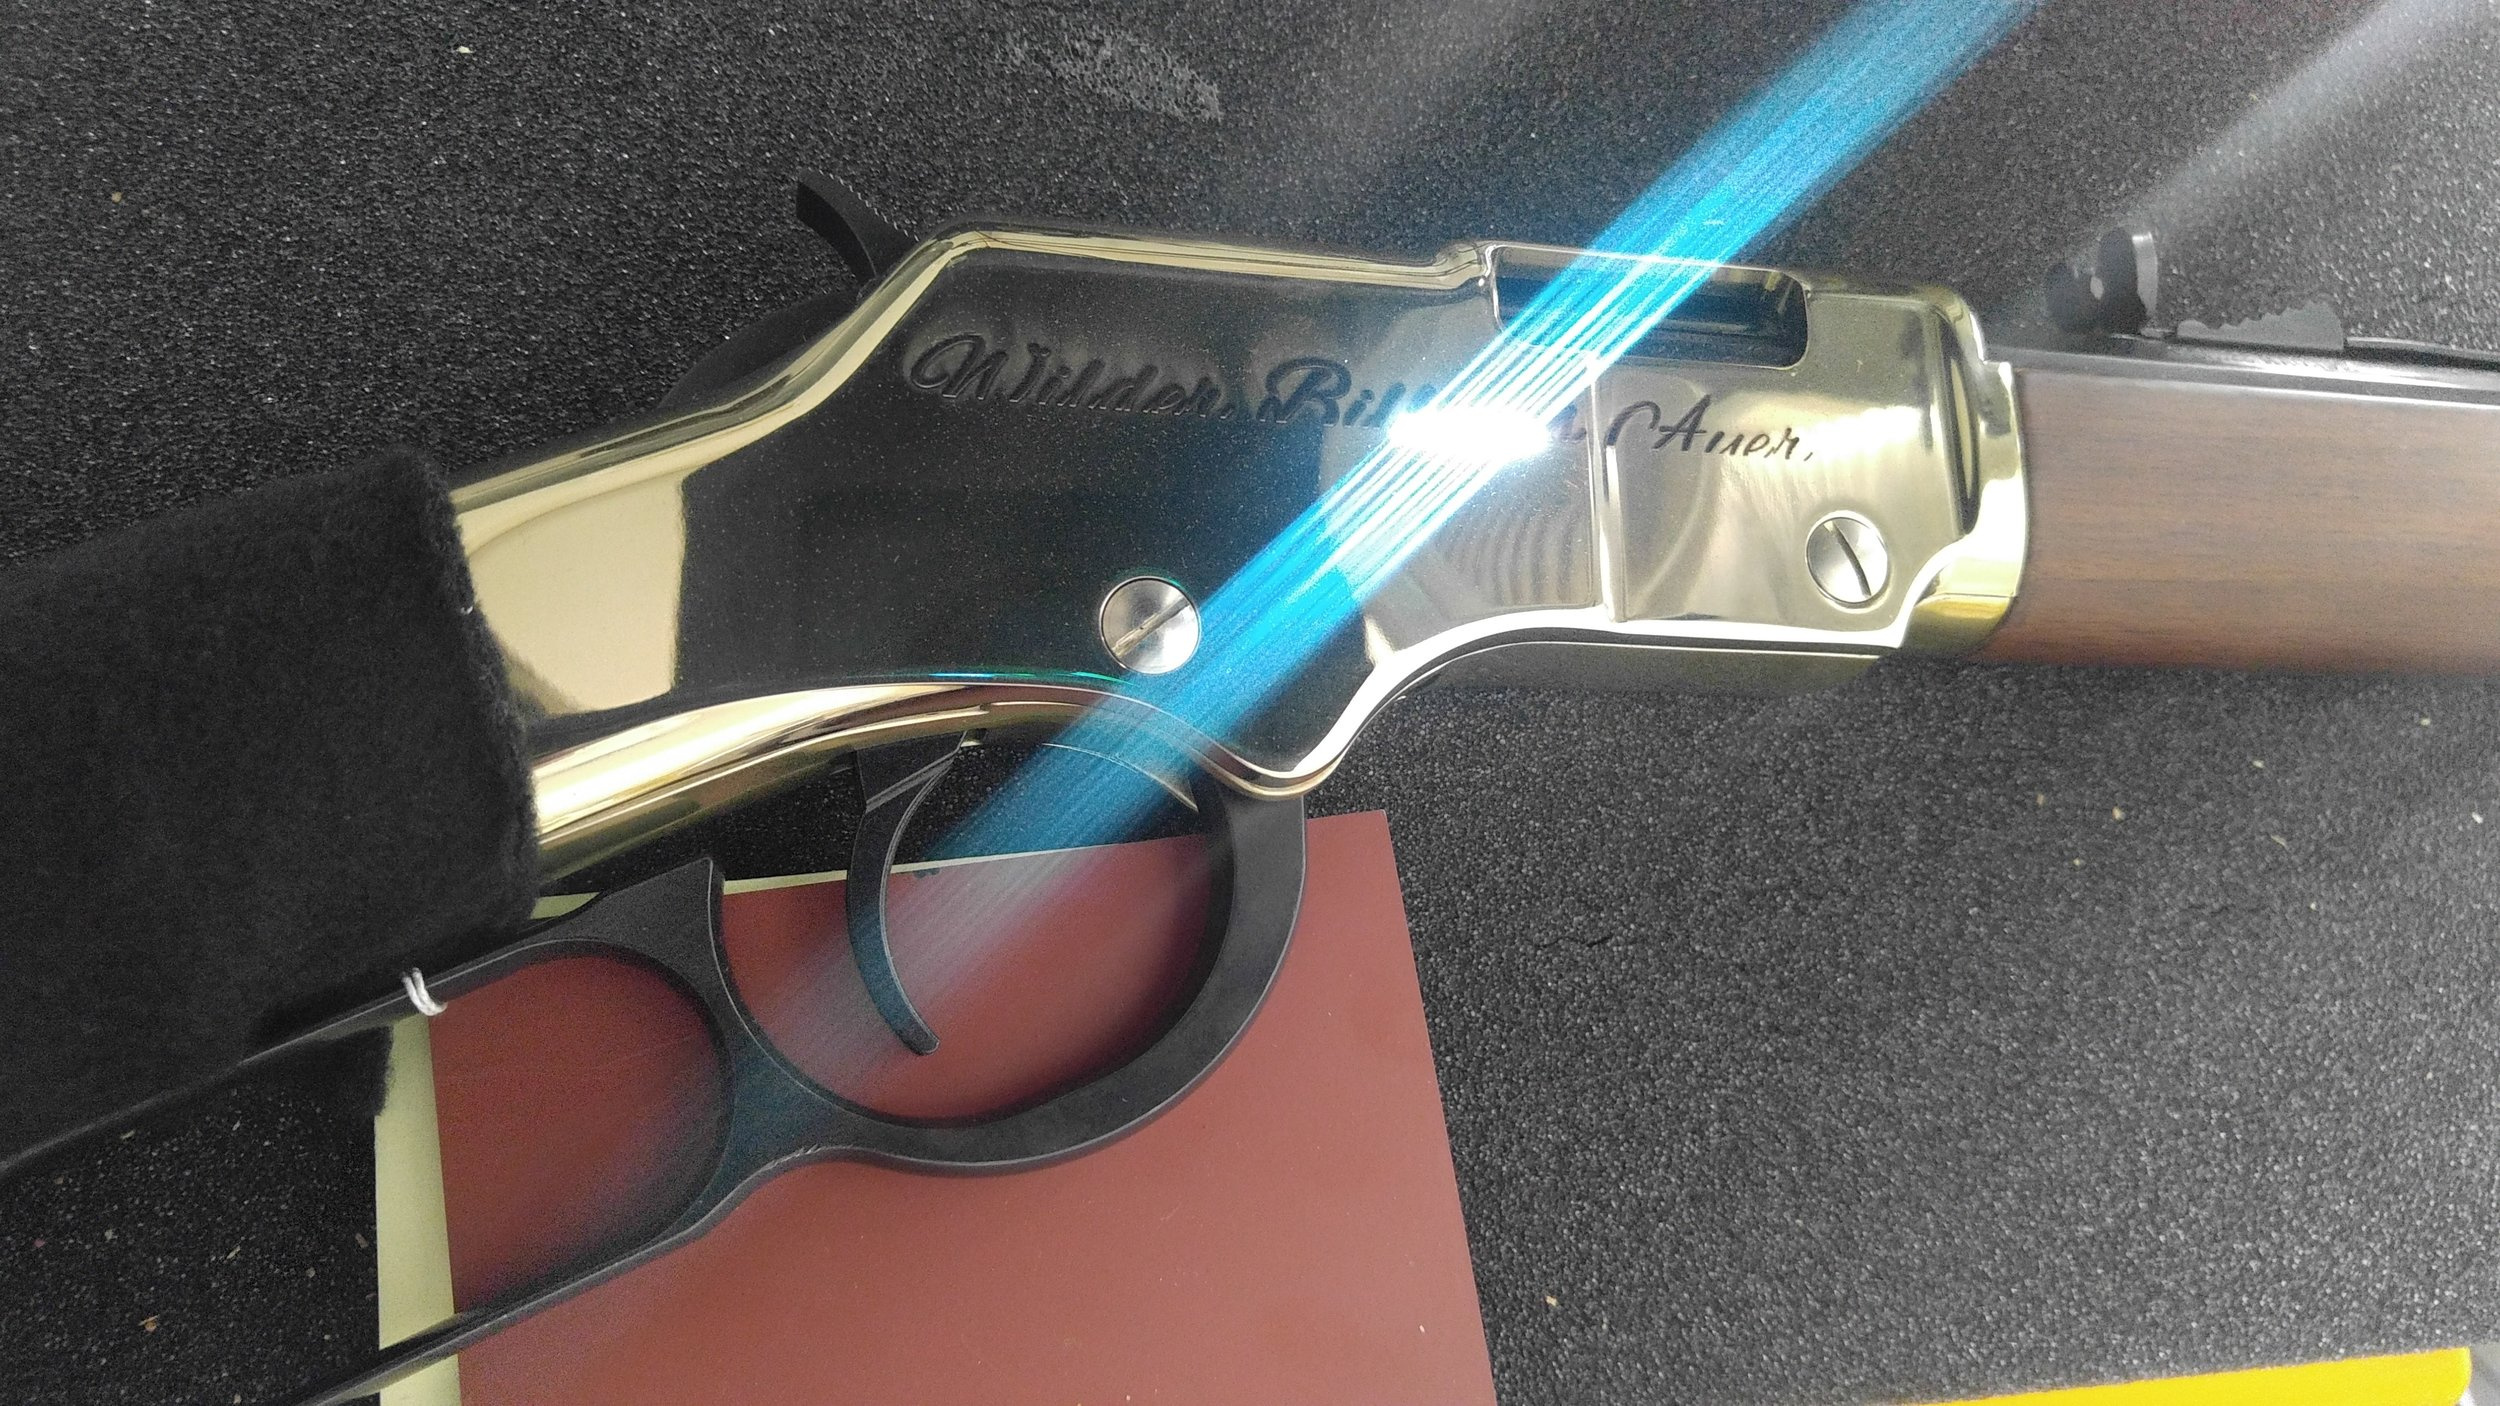 Rifle engraving in action.